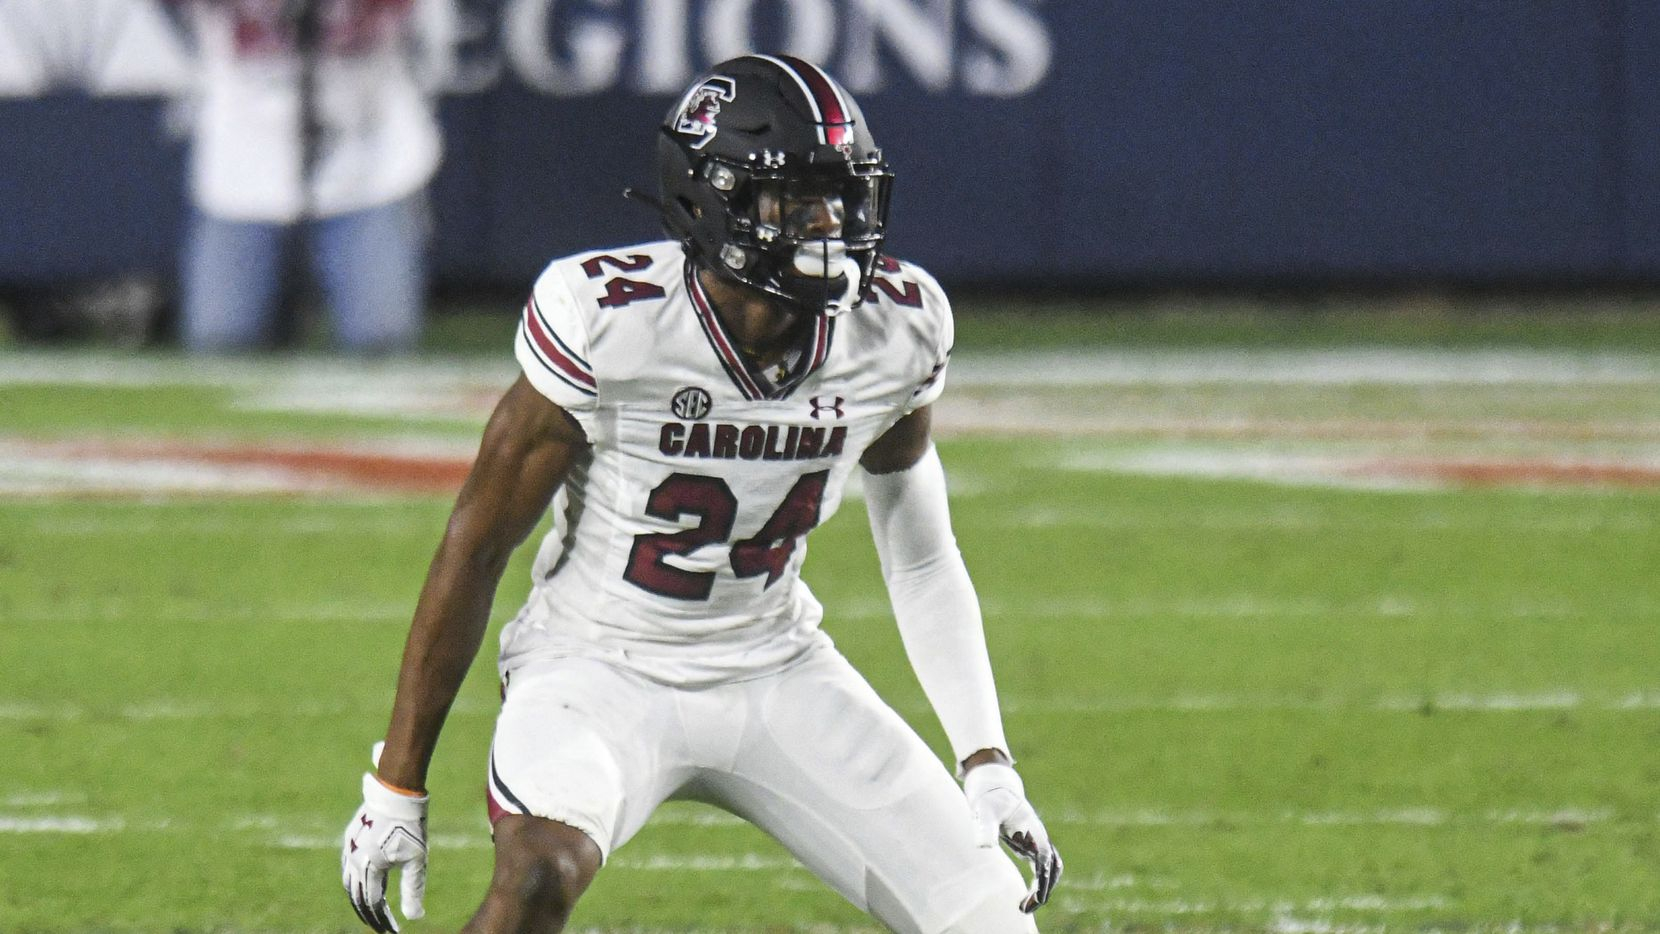 South Carolina defensive back Israel Mukuamu (24) plays against Mississippi in the first half in an NCAA college football game, in Oxford, Miss., Saturday, Nov. 14, 2020. Mississippi won 59-42.